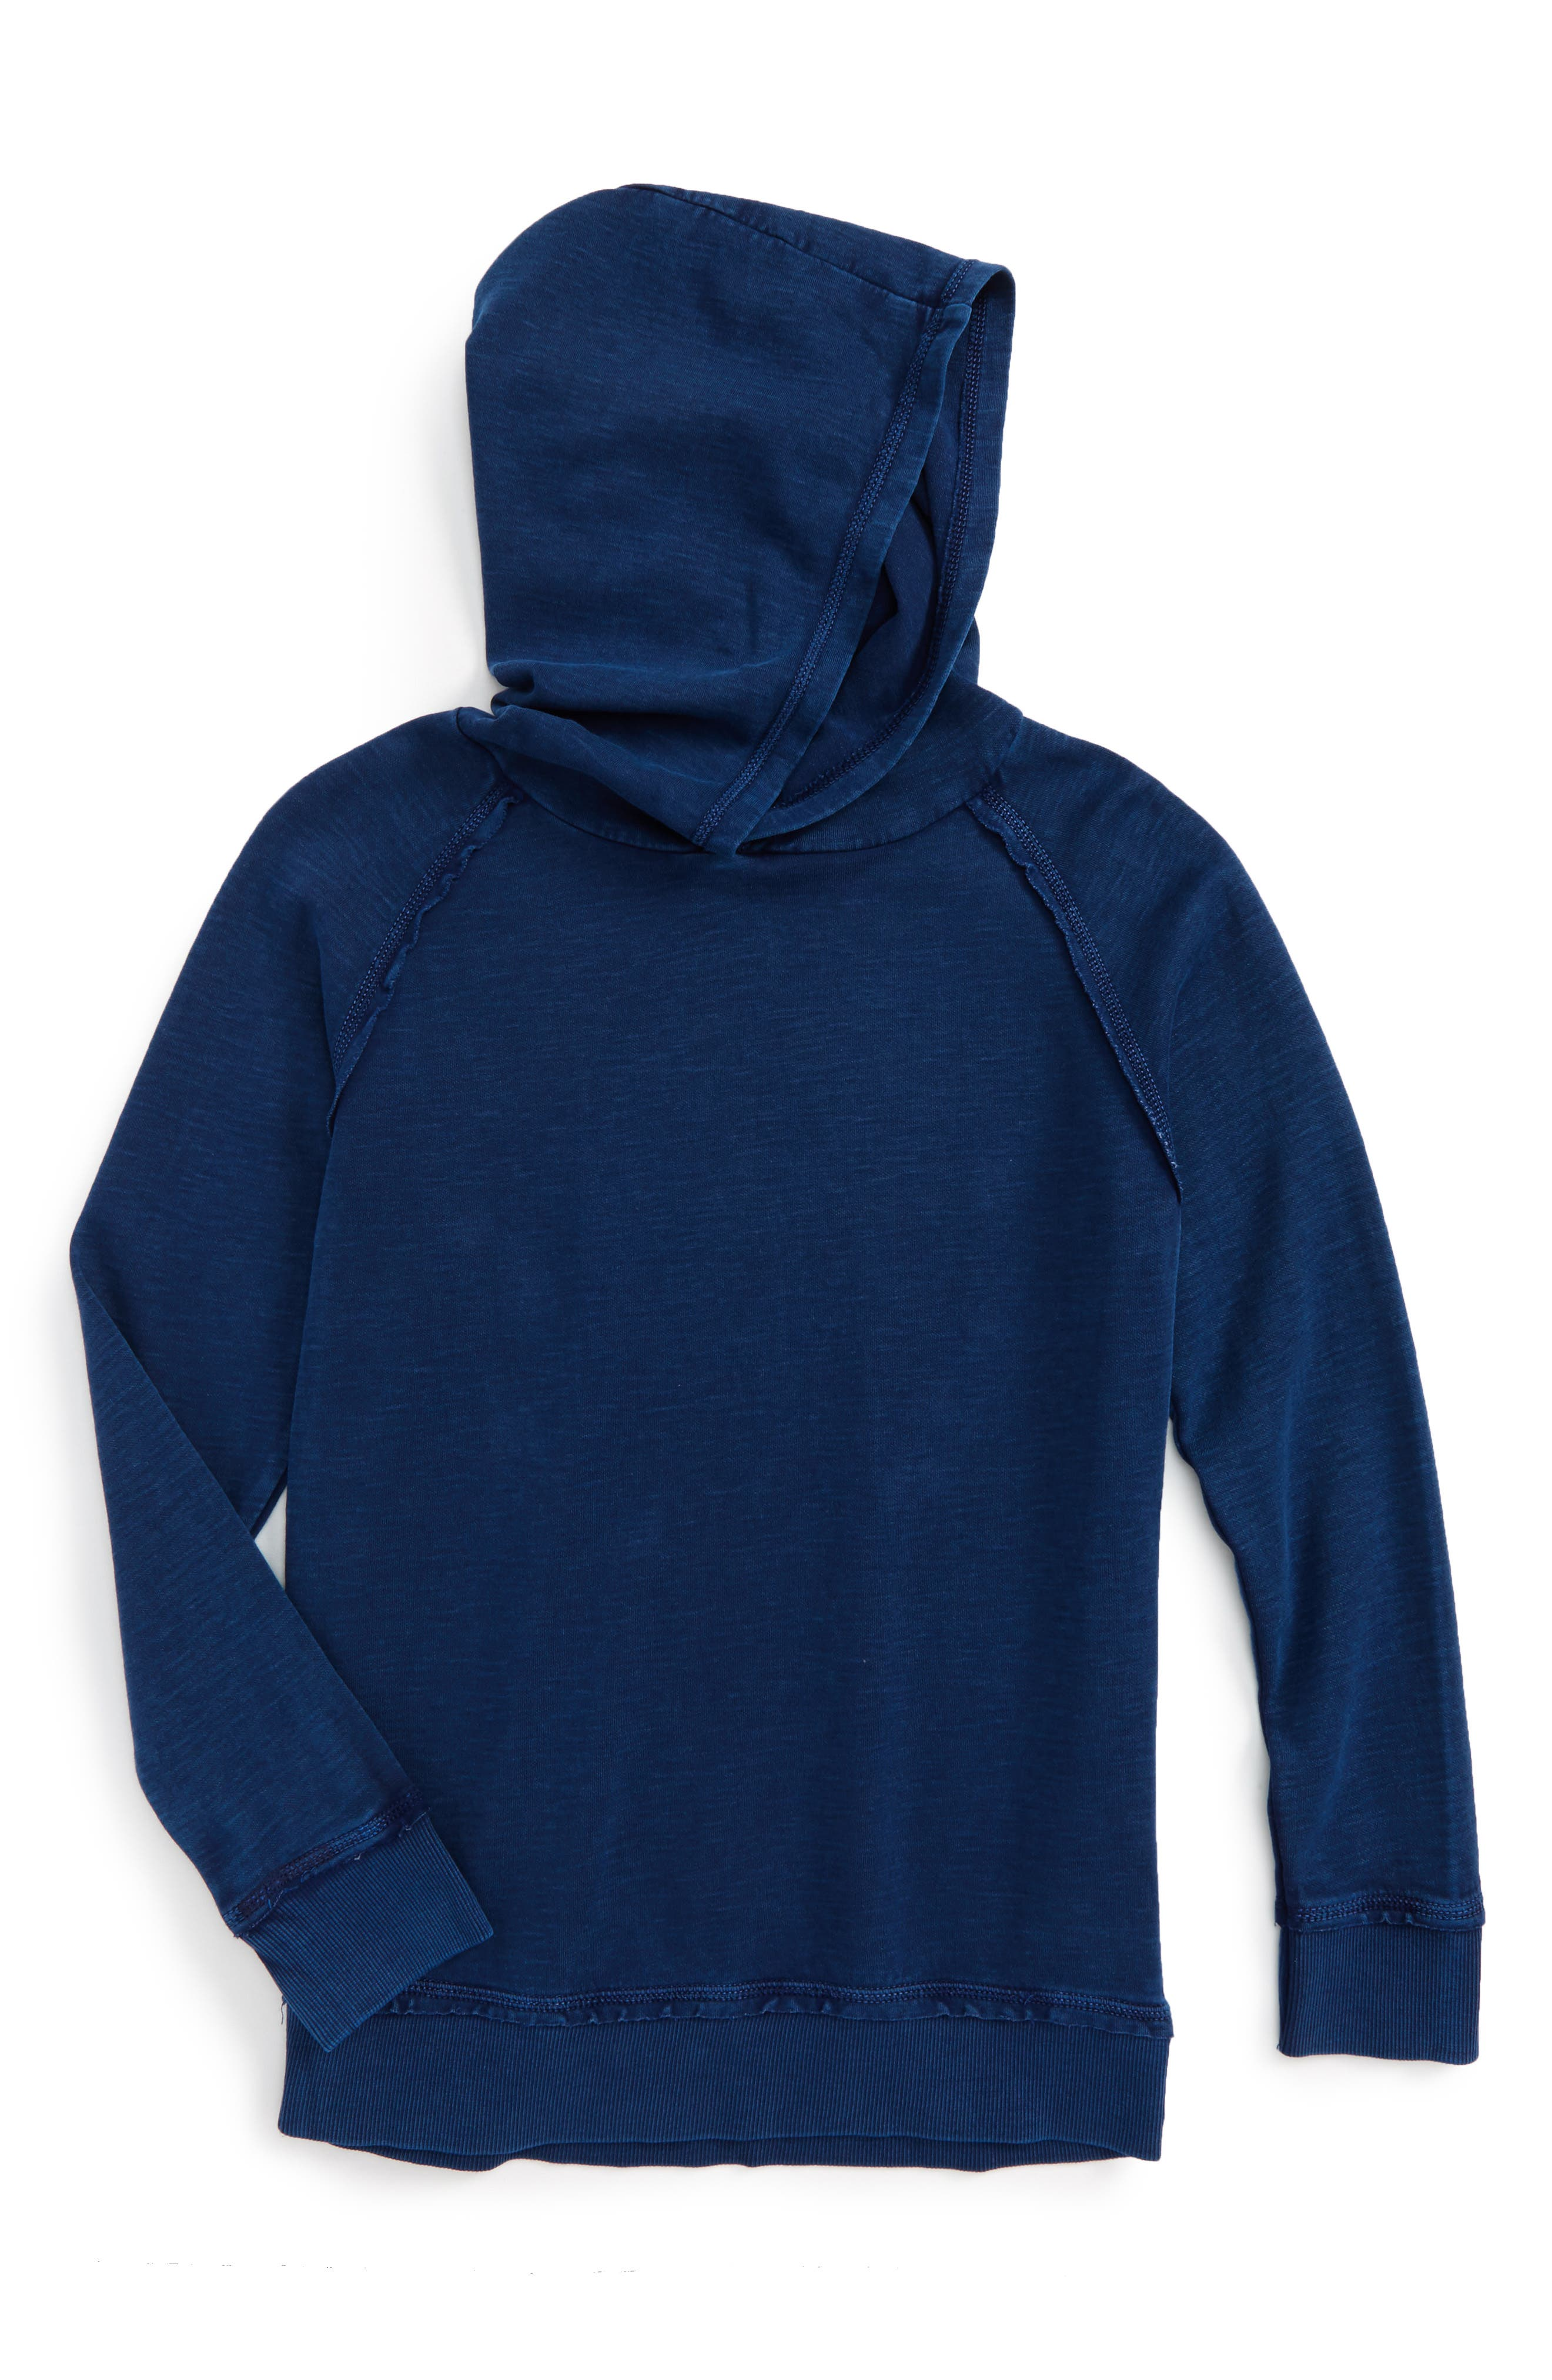 Mineral Wash Pullover Hoodie,                         Main,                         color, Blue Estate